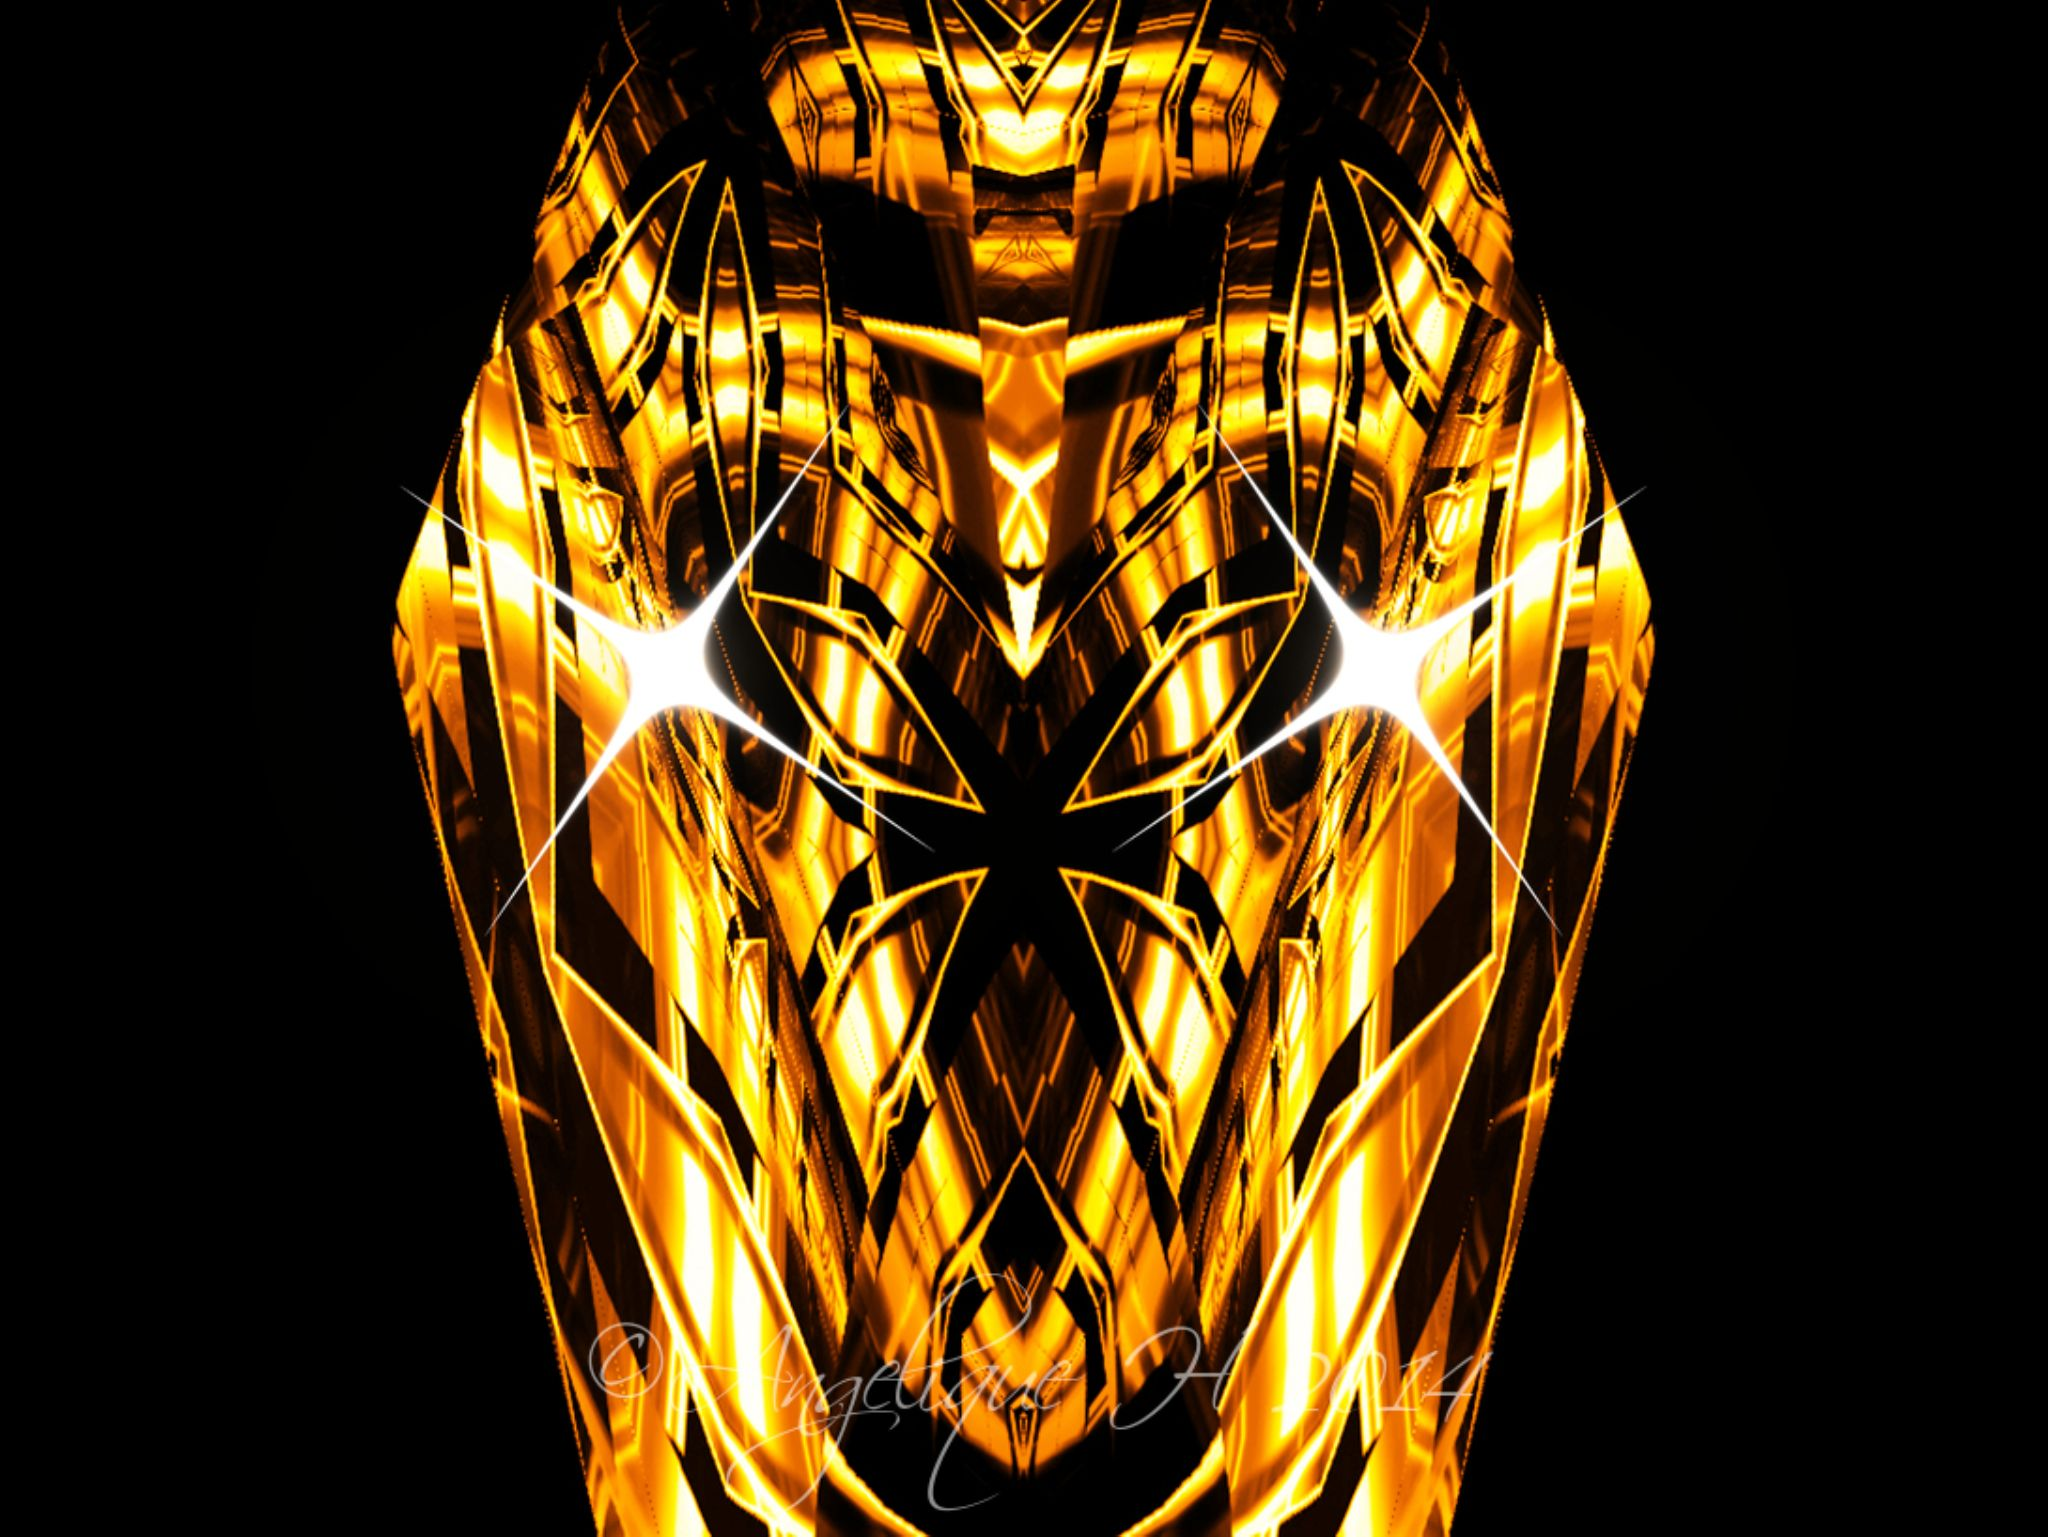 My Own Face Mask,Starshine(2)Mirror:3D Cube- 3d view perspective Metal Perspective 100 Angelique H  by AngeliqueH